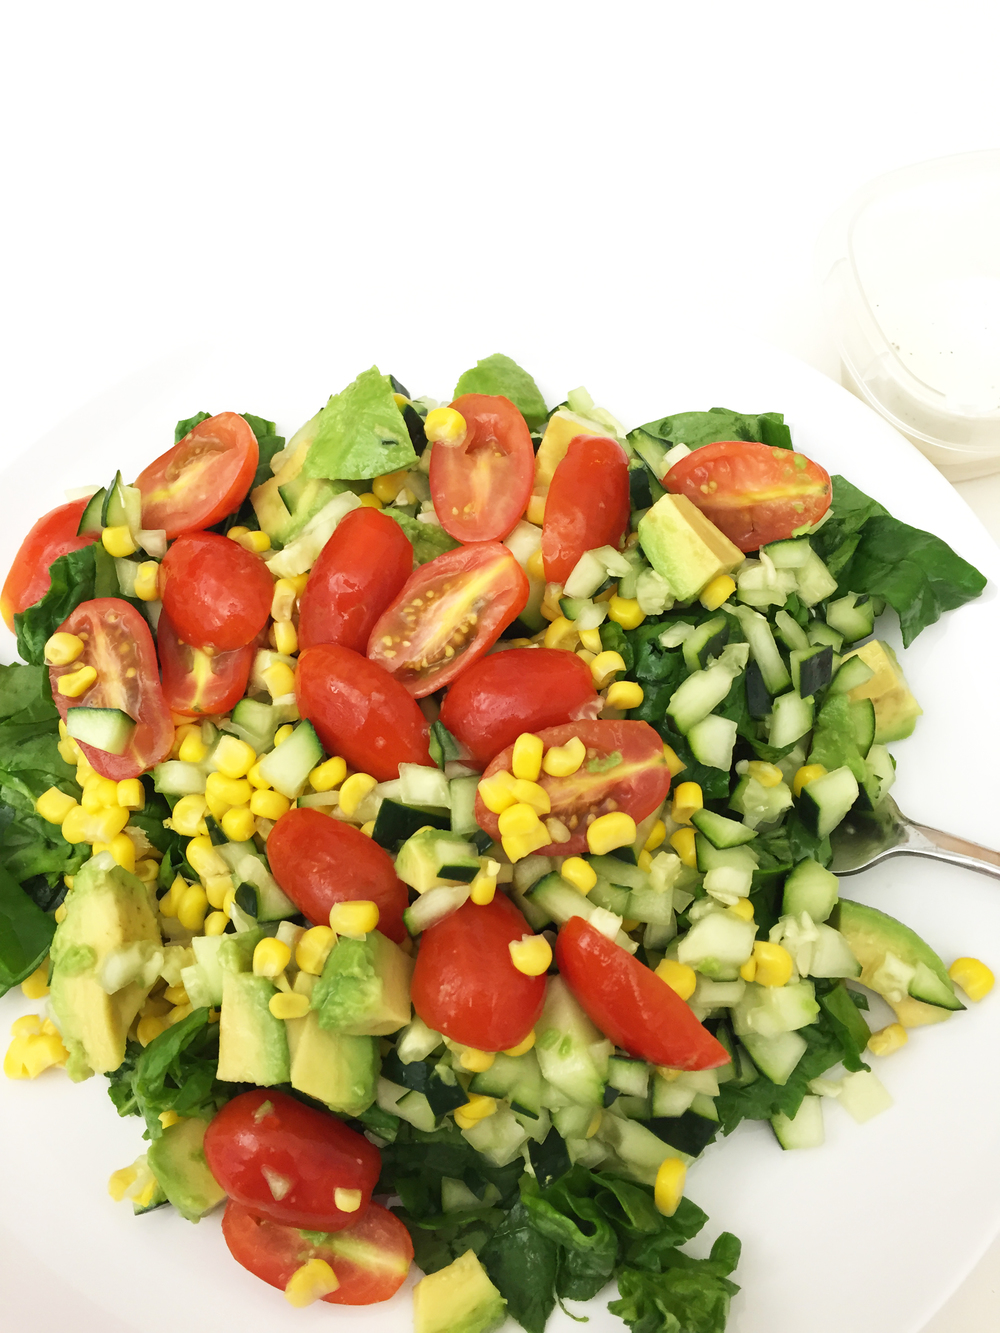 Tomatoes, cucumber, corn, avocado, spinach. Ranch on the side.